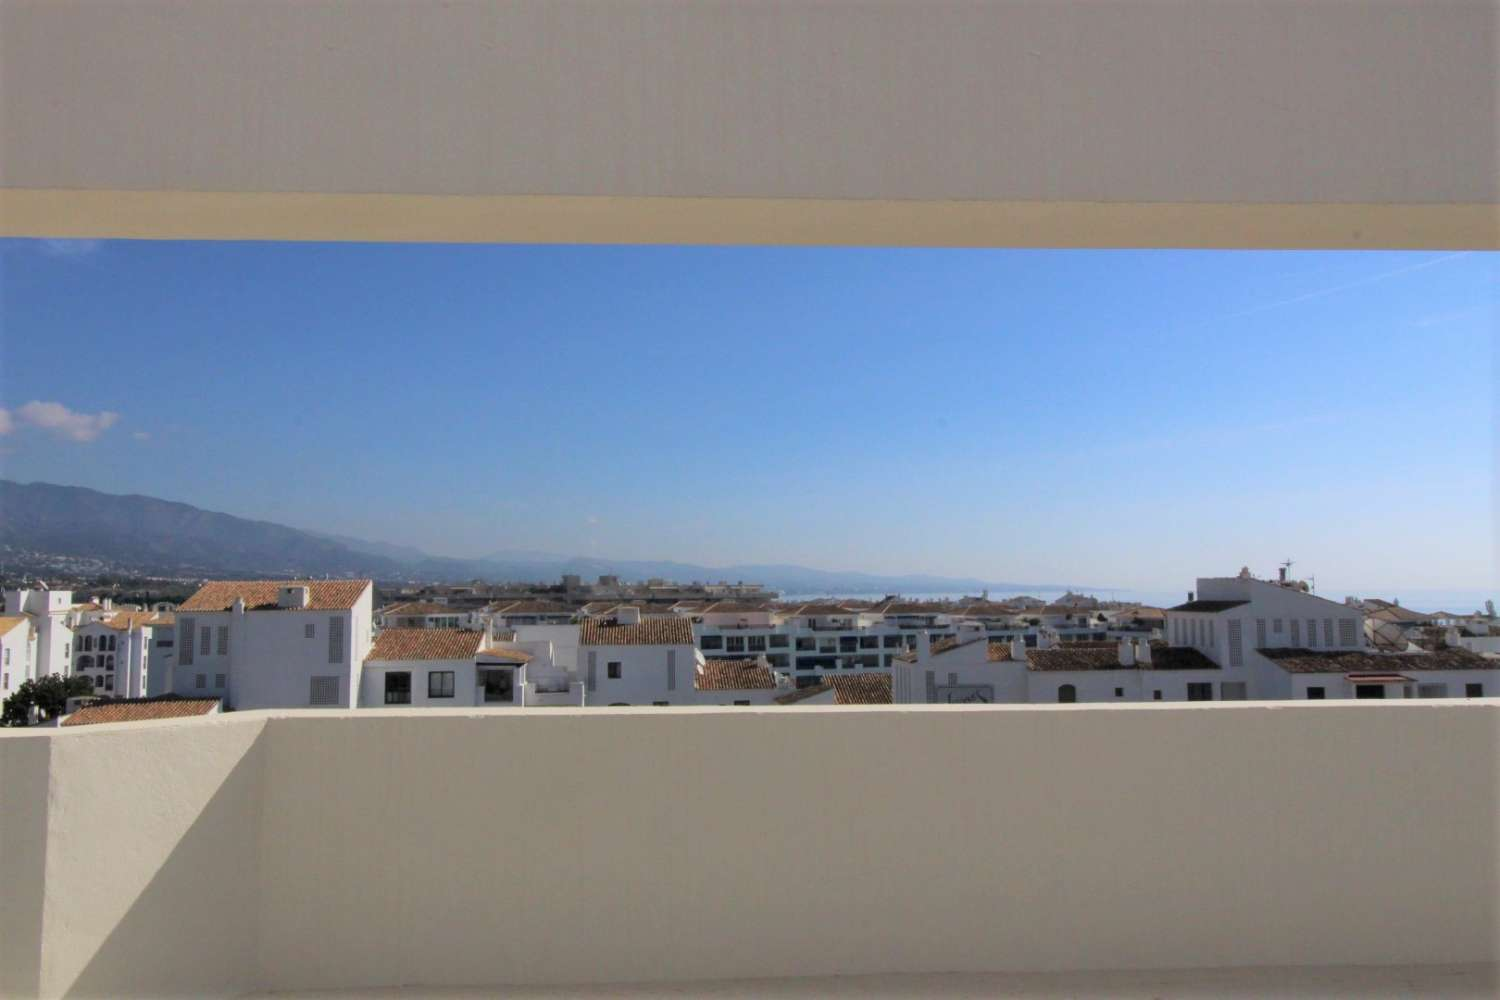 Exclusive Duplex Penthouse in Playas del Duque with 5 bedrooms and 4 bathrooms.